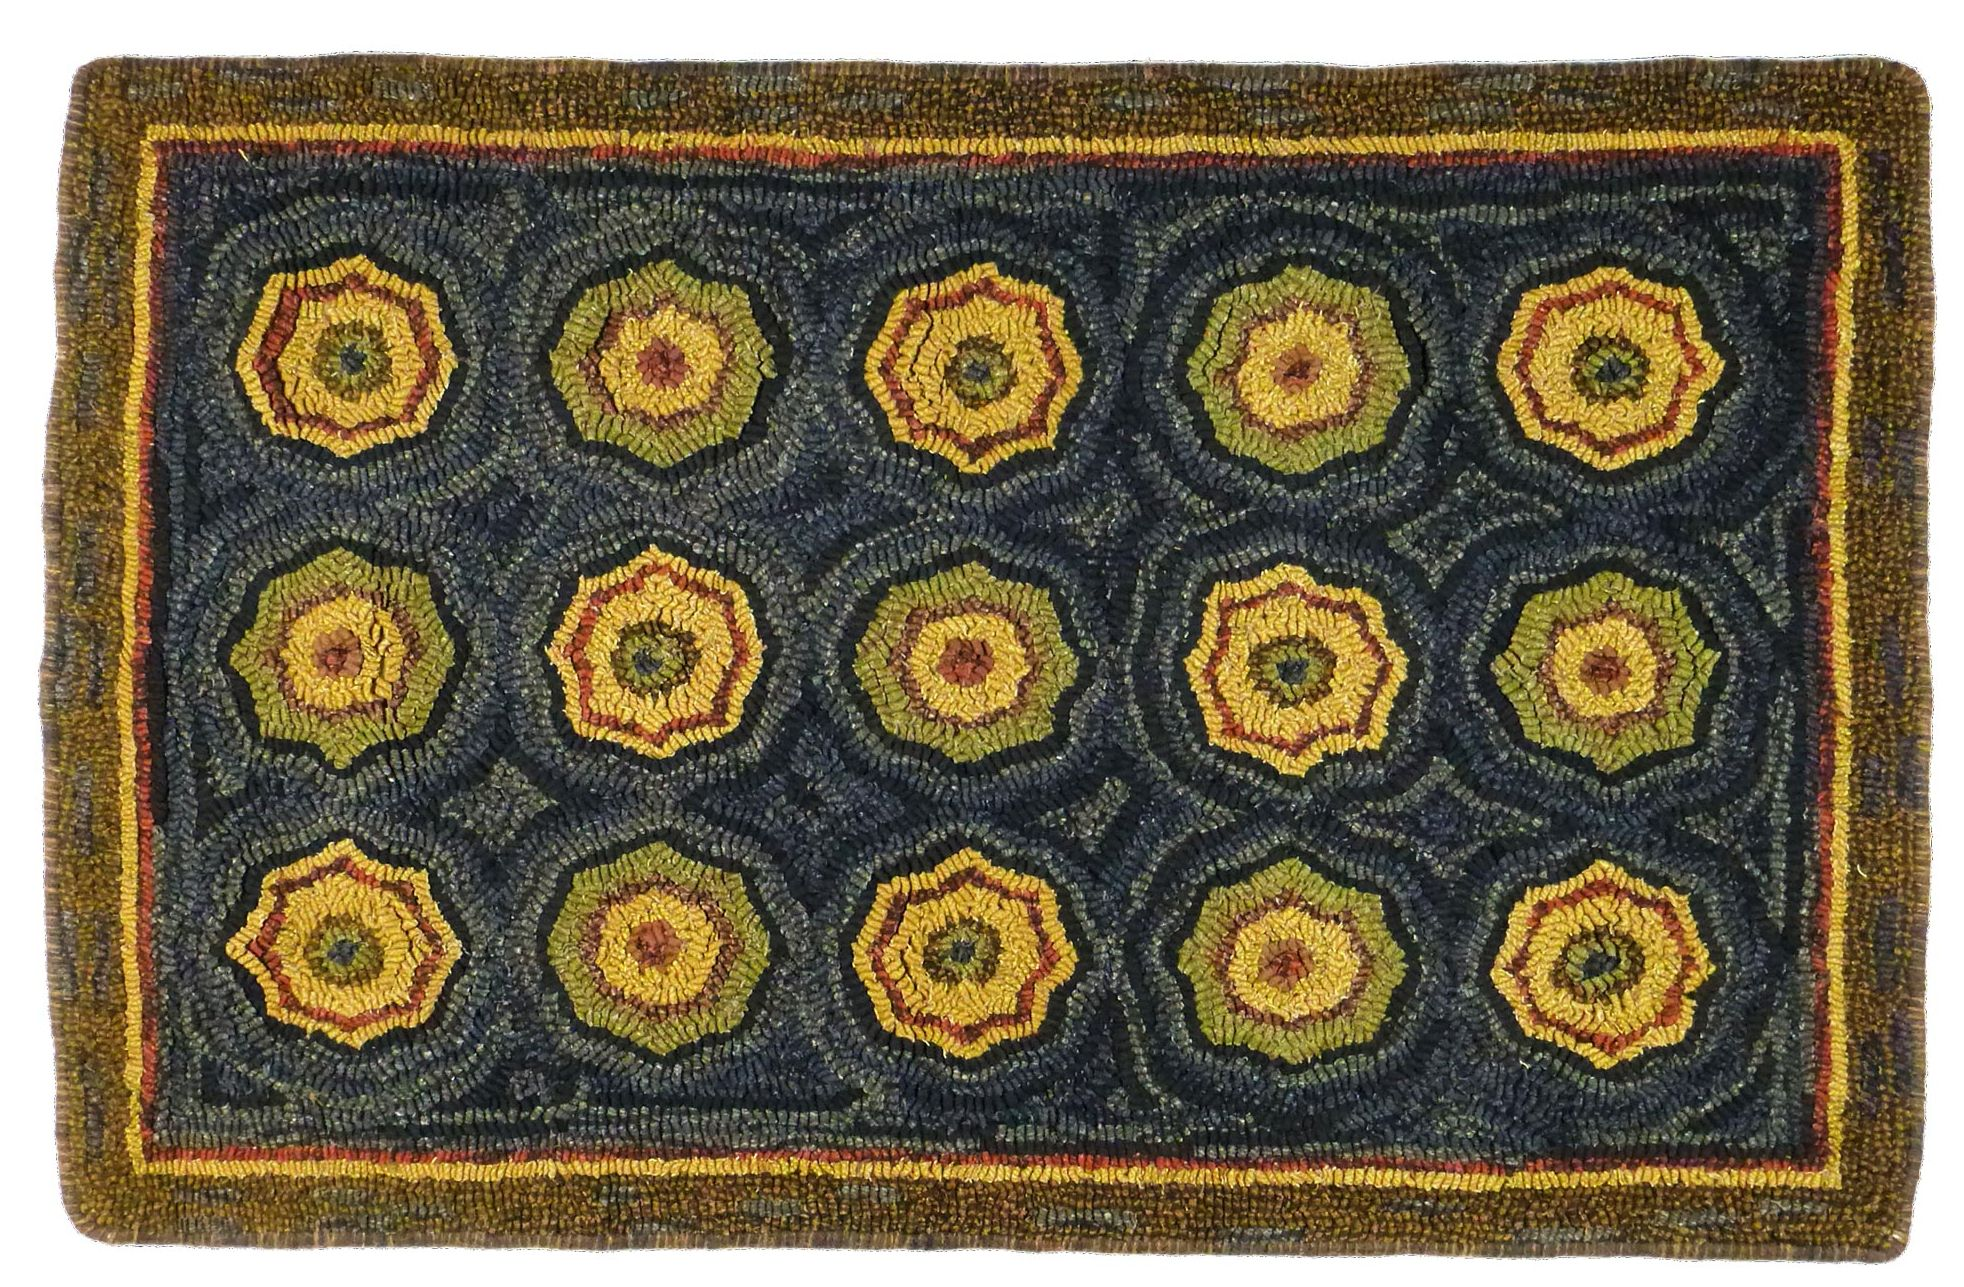 HSD-121875-Lilly-Pad-Hooked-Rug-LRG